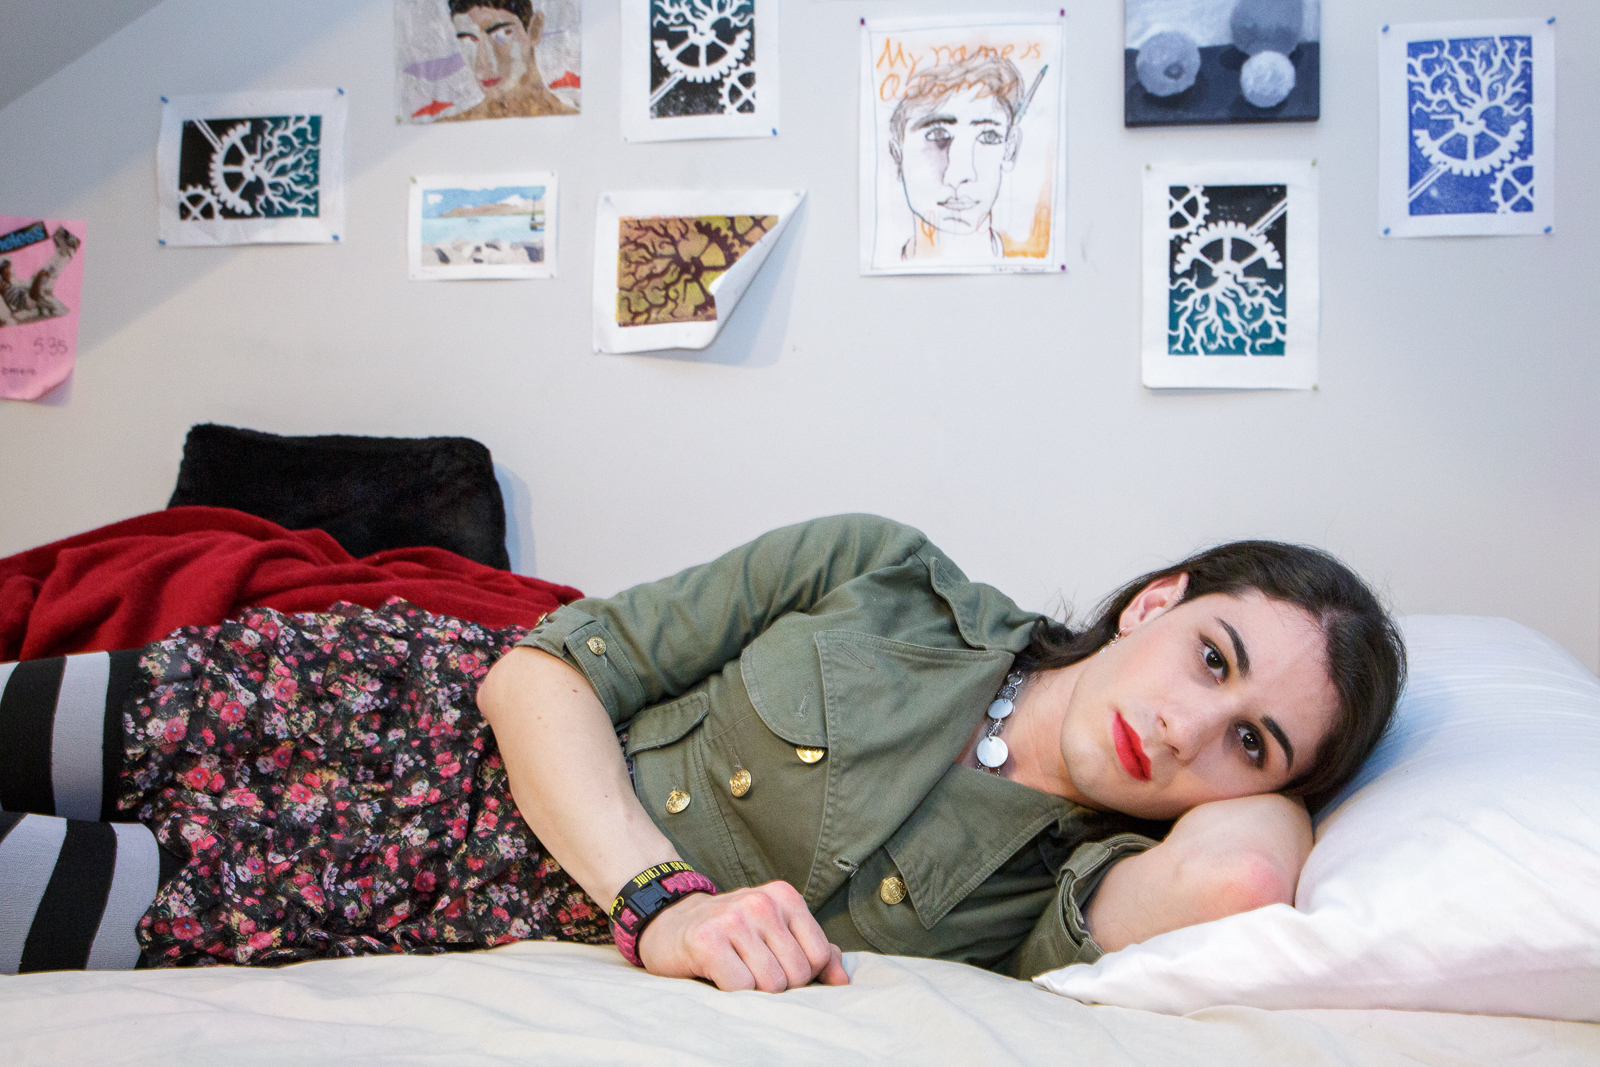 Ashley lies on her bed, in front of drawings she made as a young boy.